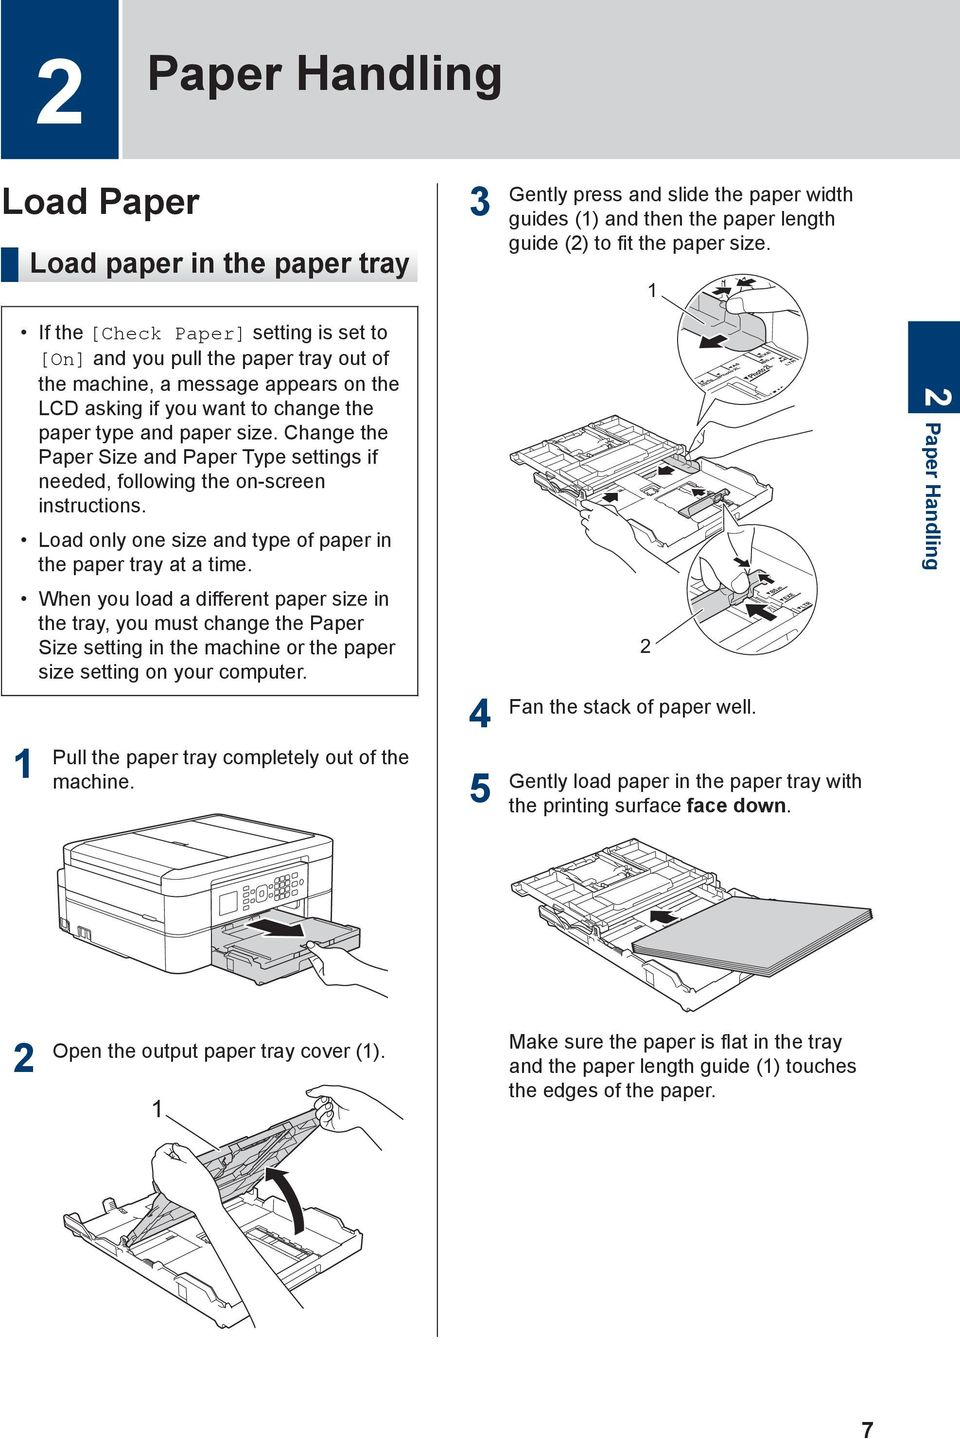 When you load a different paper size in the tray, you must change the Paper Size setting in the machine or the paper size setting on your computer. Pull the paper tray completely out of the machine.